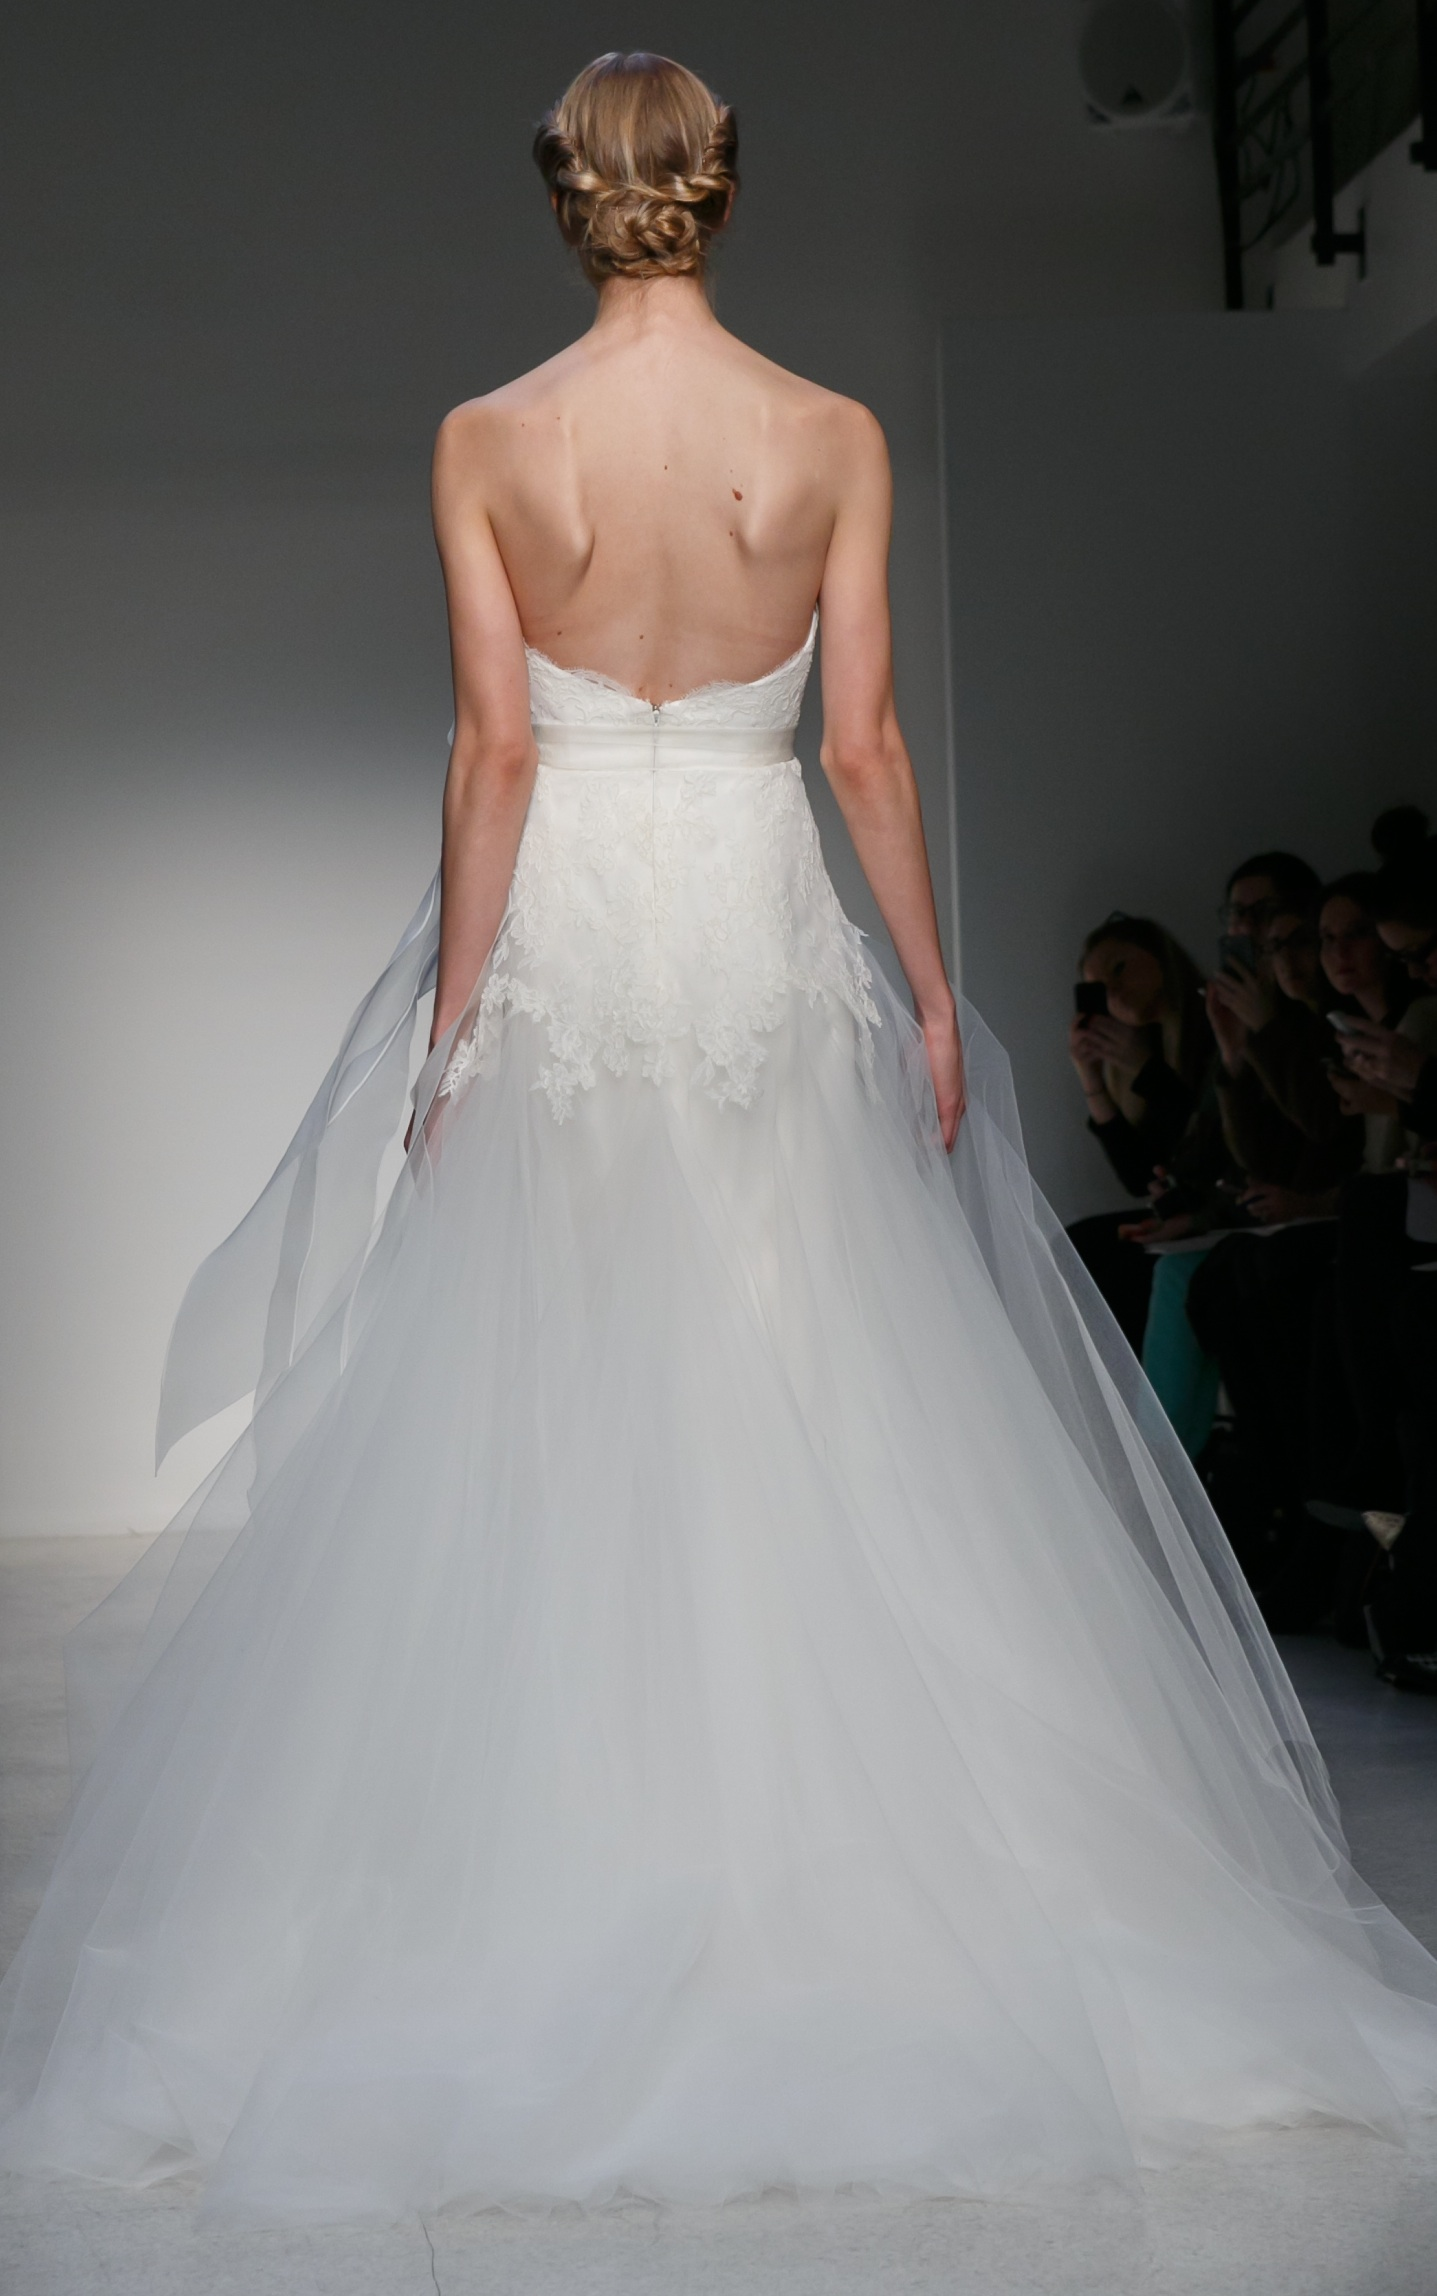 Fall-2013-wedding-dress-by-christos-amsale-bridal-5b.original